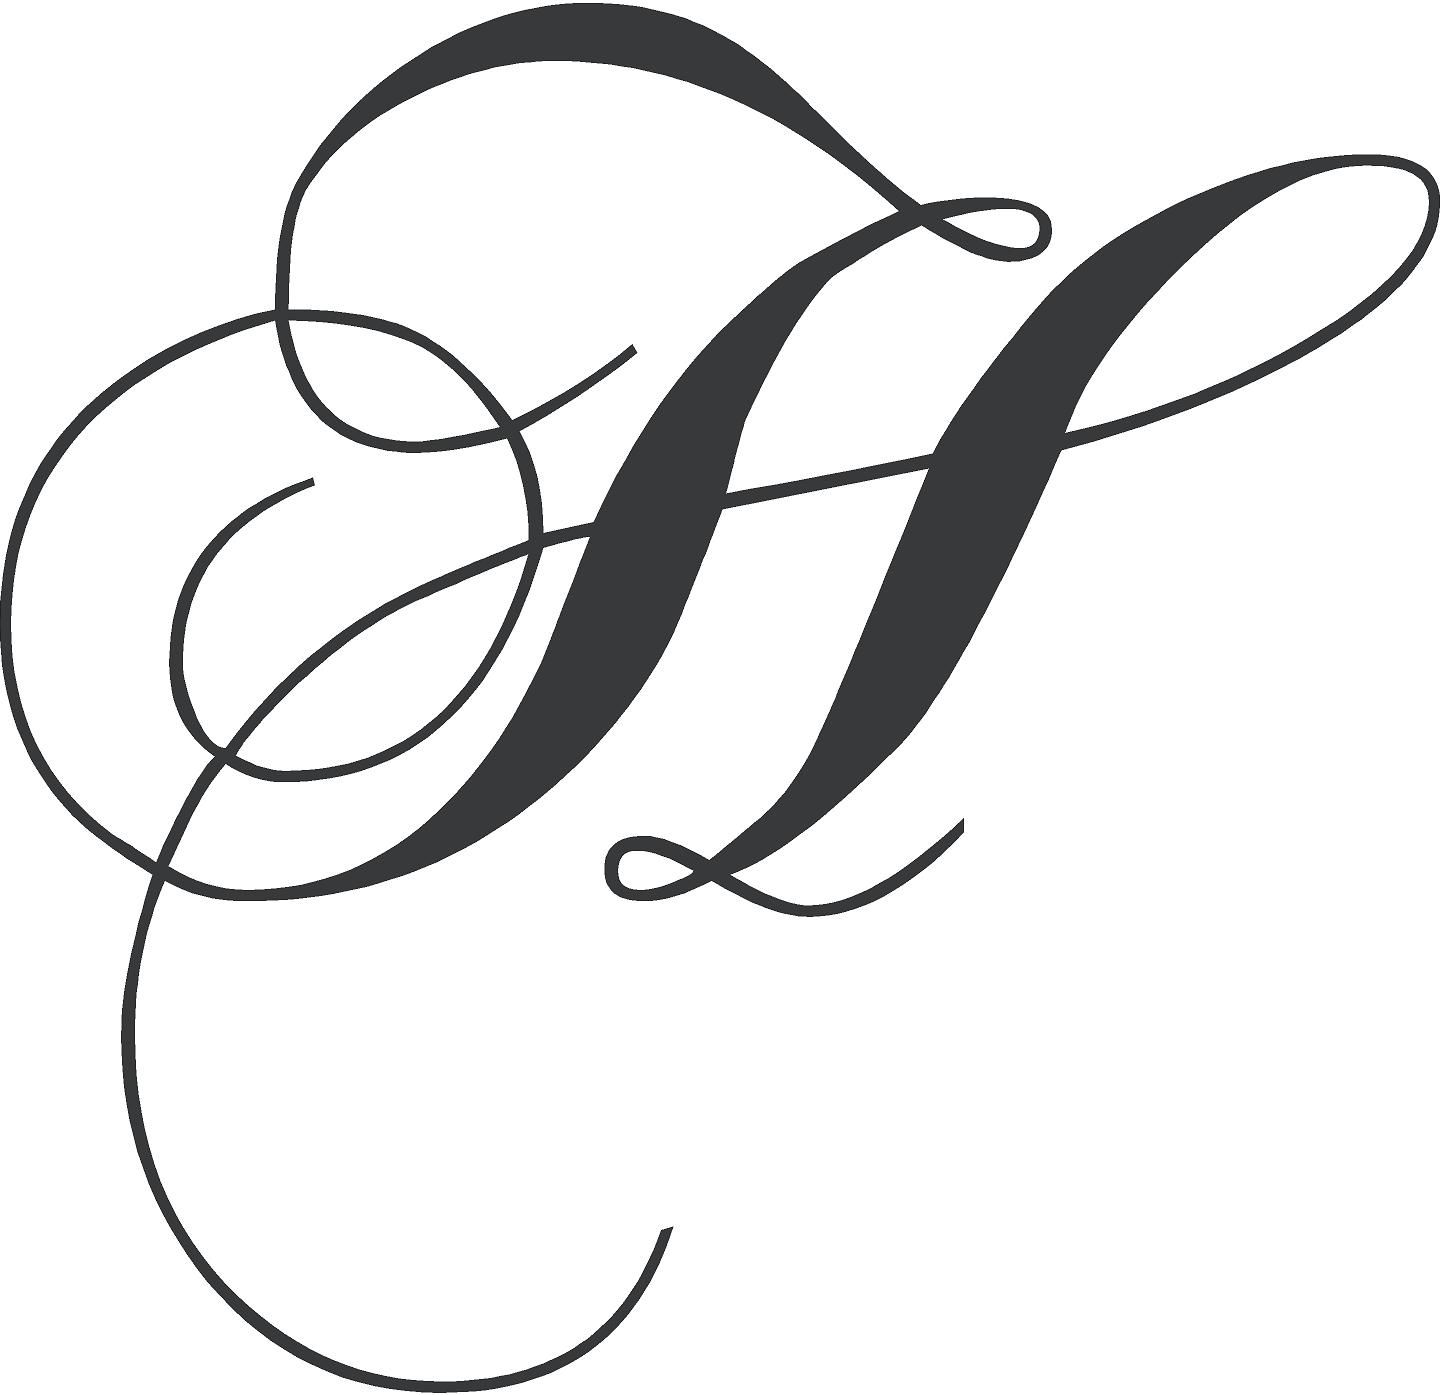 Chopin Monogram Wall Decal Cursive letters fancy, Letter